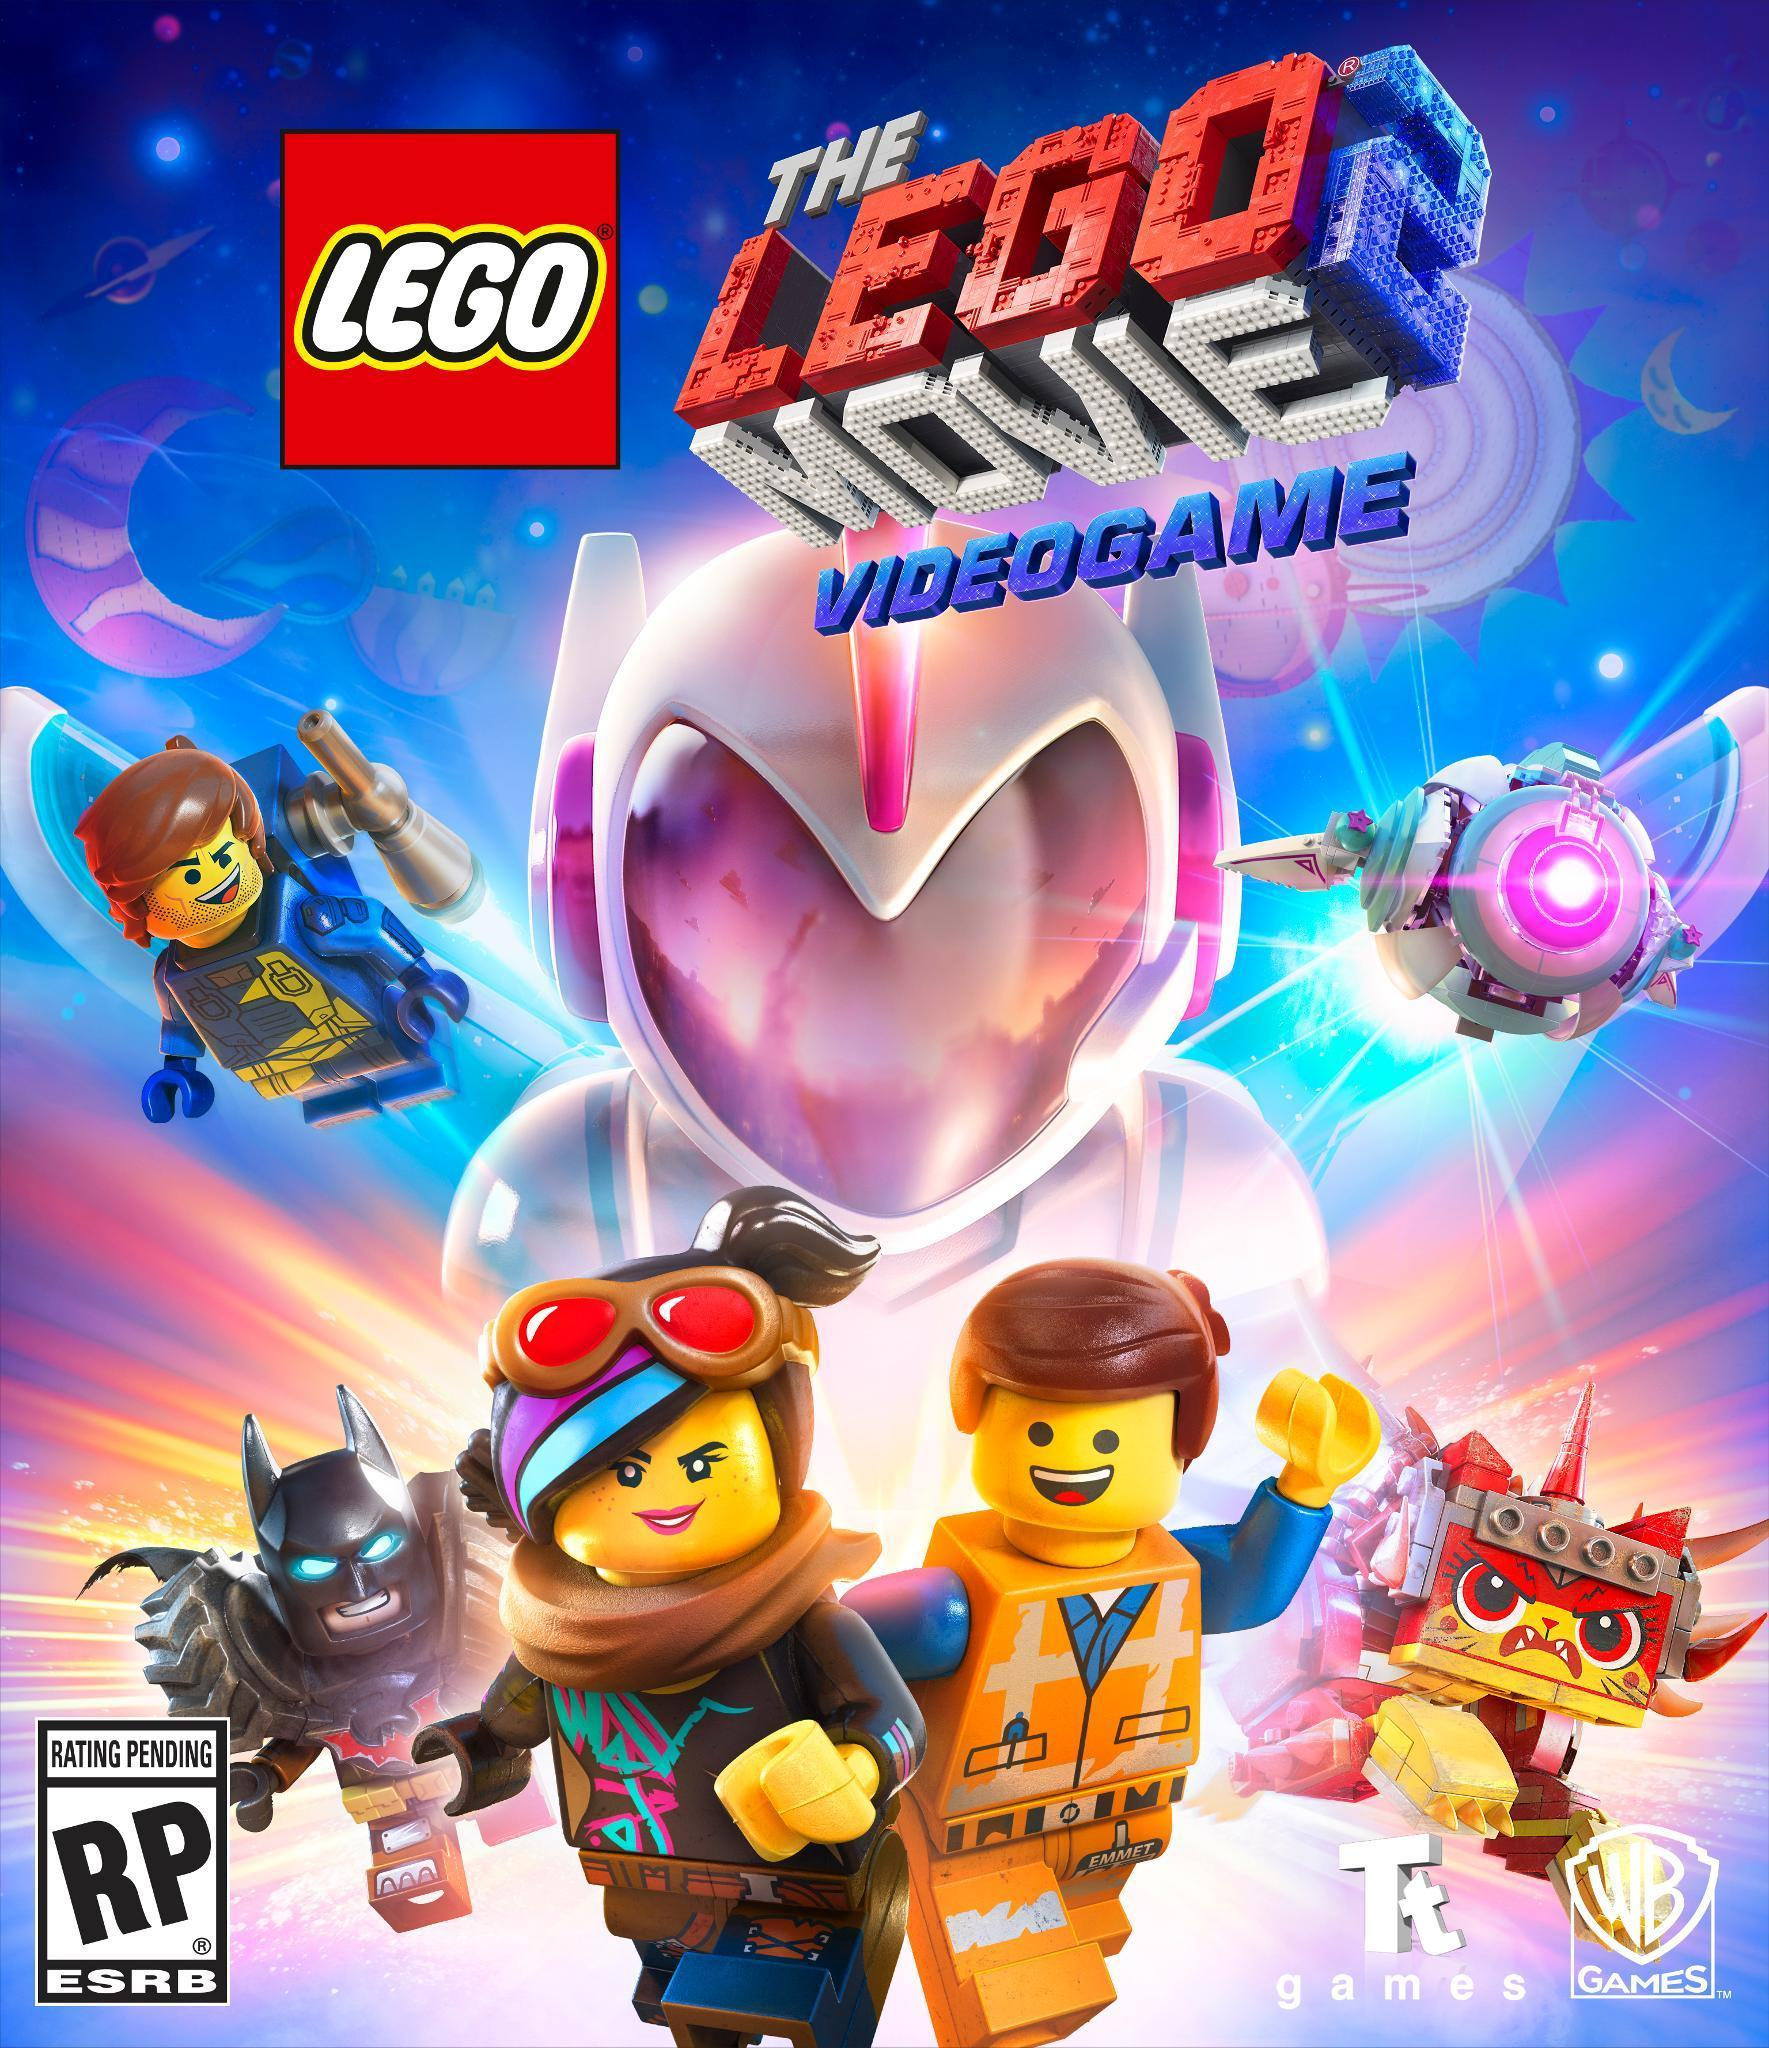 Box artwork for The LEGO Movie 2 Videogame.